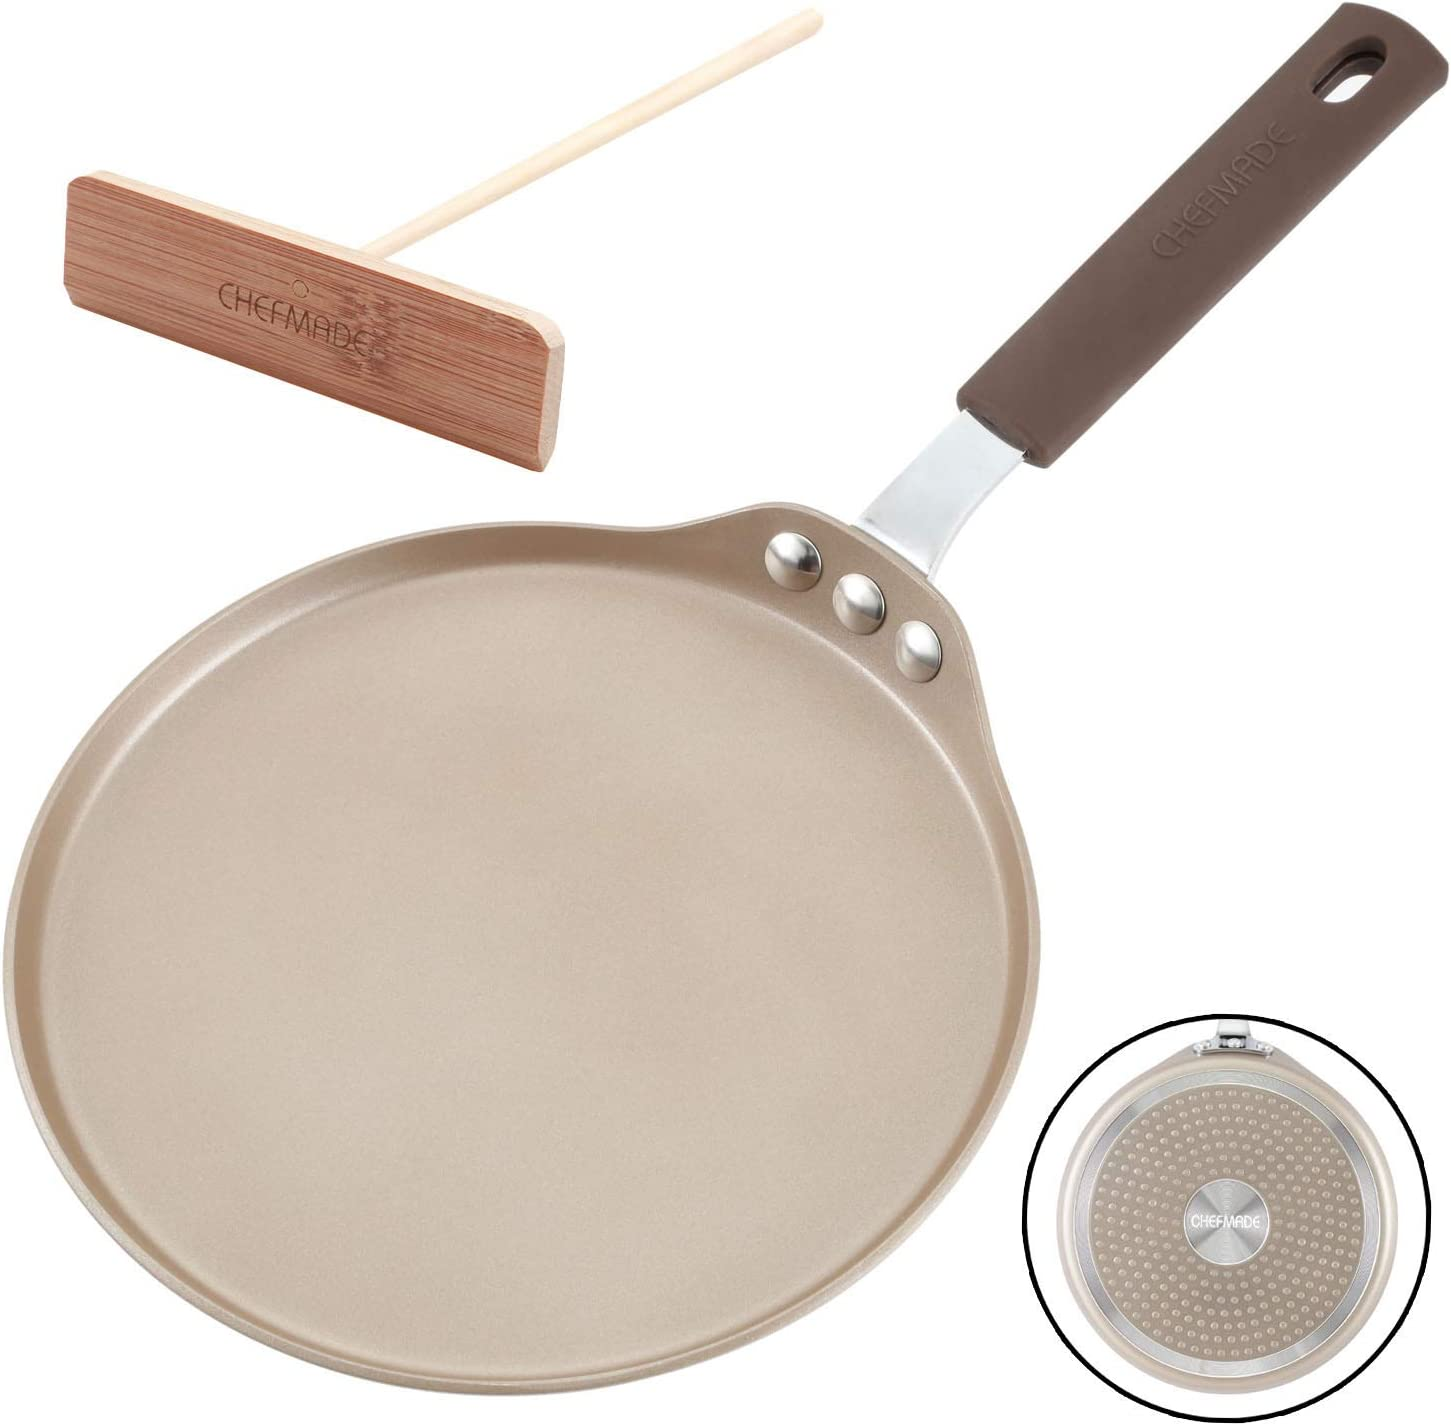 CHEFMADE Crepe Pan with Bamboo Spreader, 8-Inch Non-stick Pancake Pan with Insulating Silicone Handle, FDA Approved for Gas, Induction, Electric Cooker (Champagne Gold)